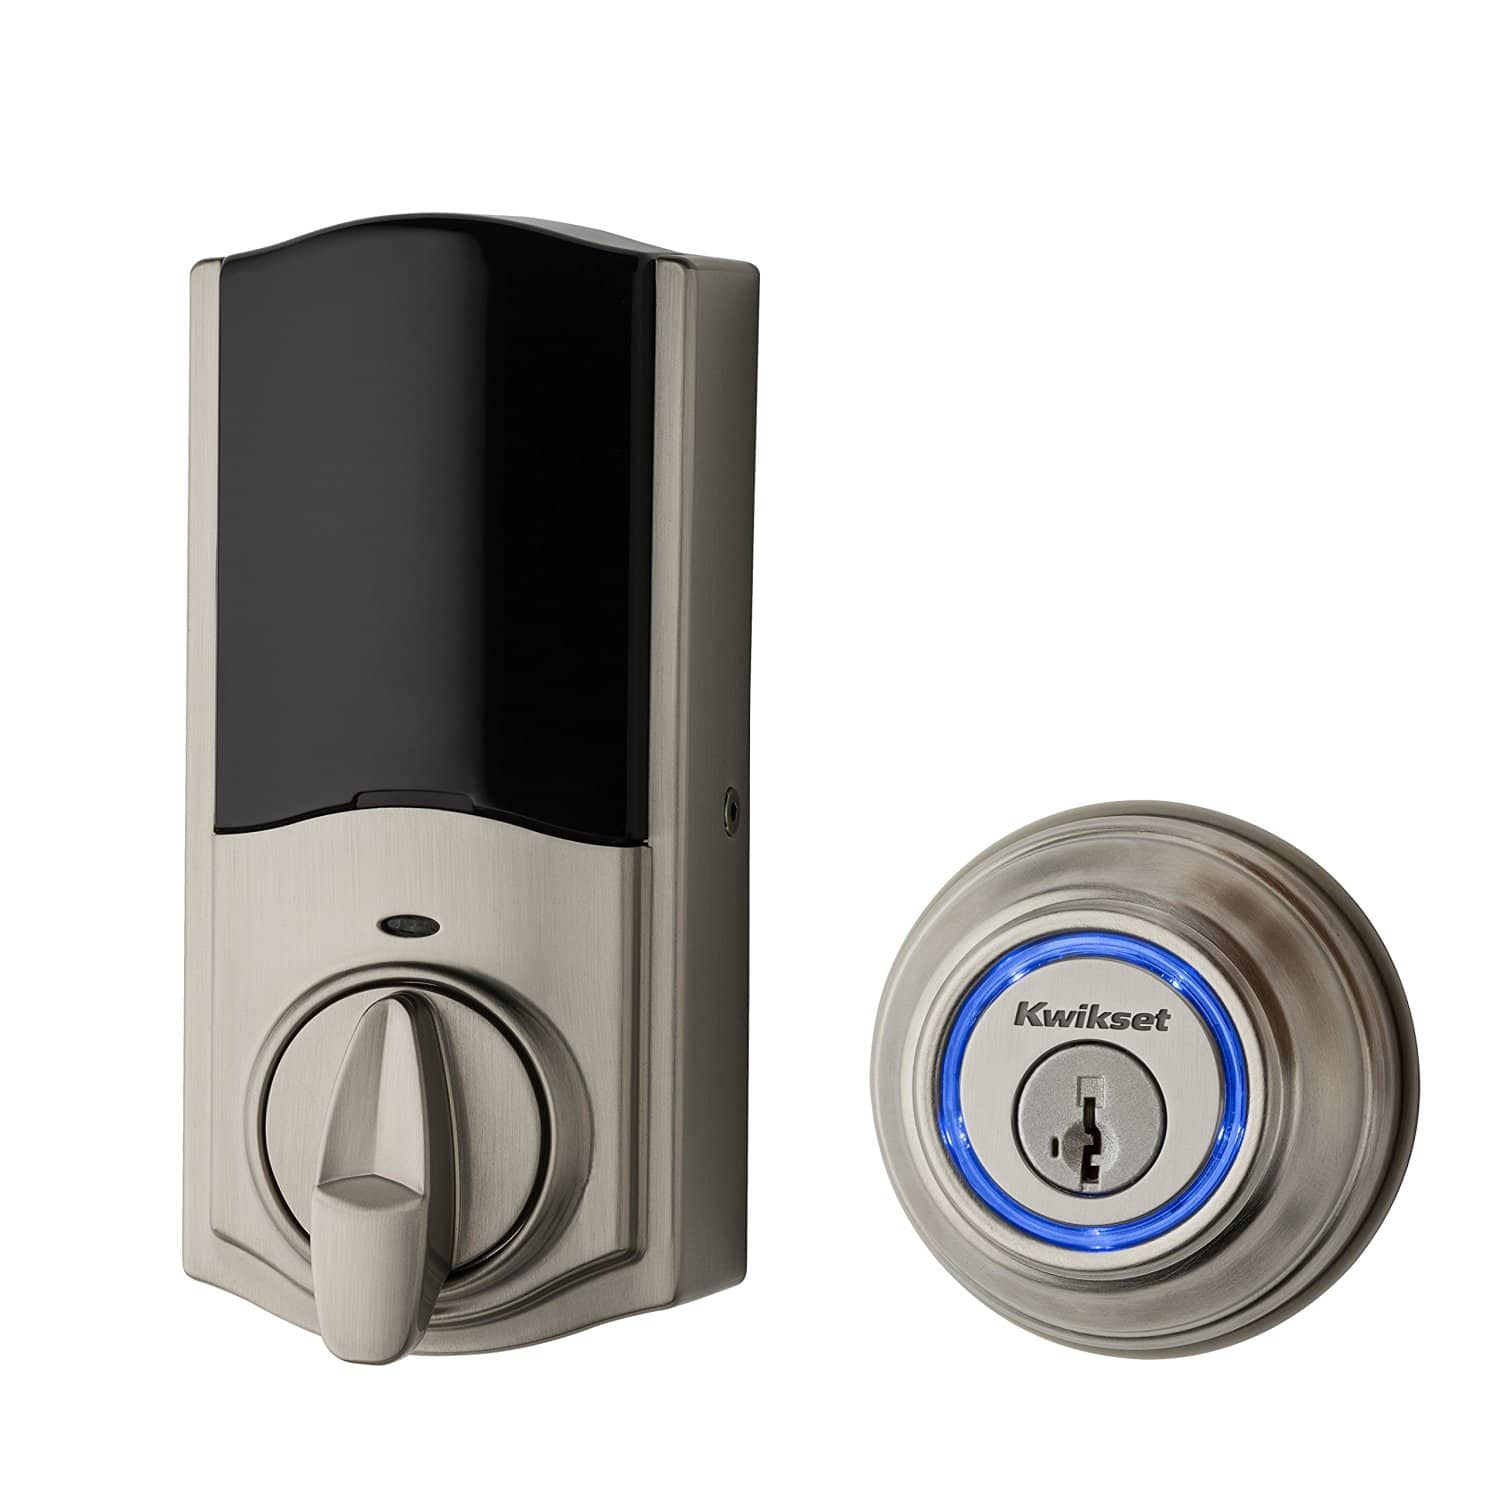 watch review z lock deadbolt youtube door zigbee kwikset wave touchscreen